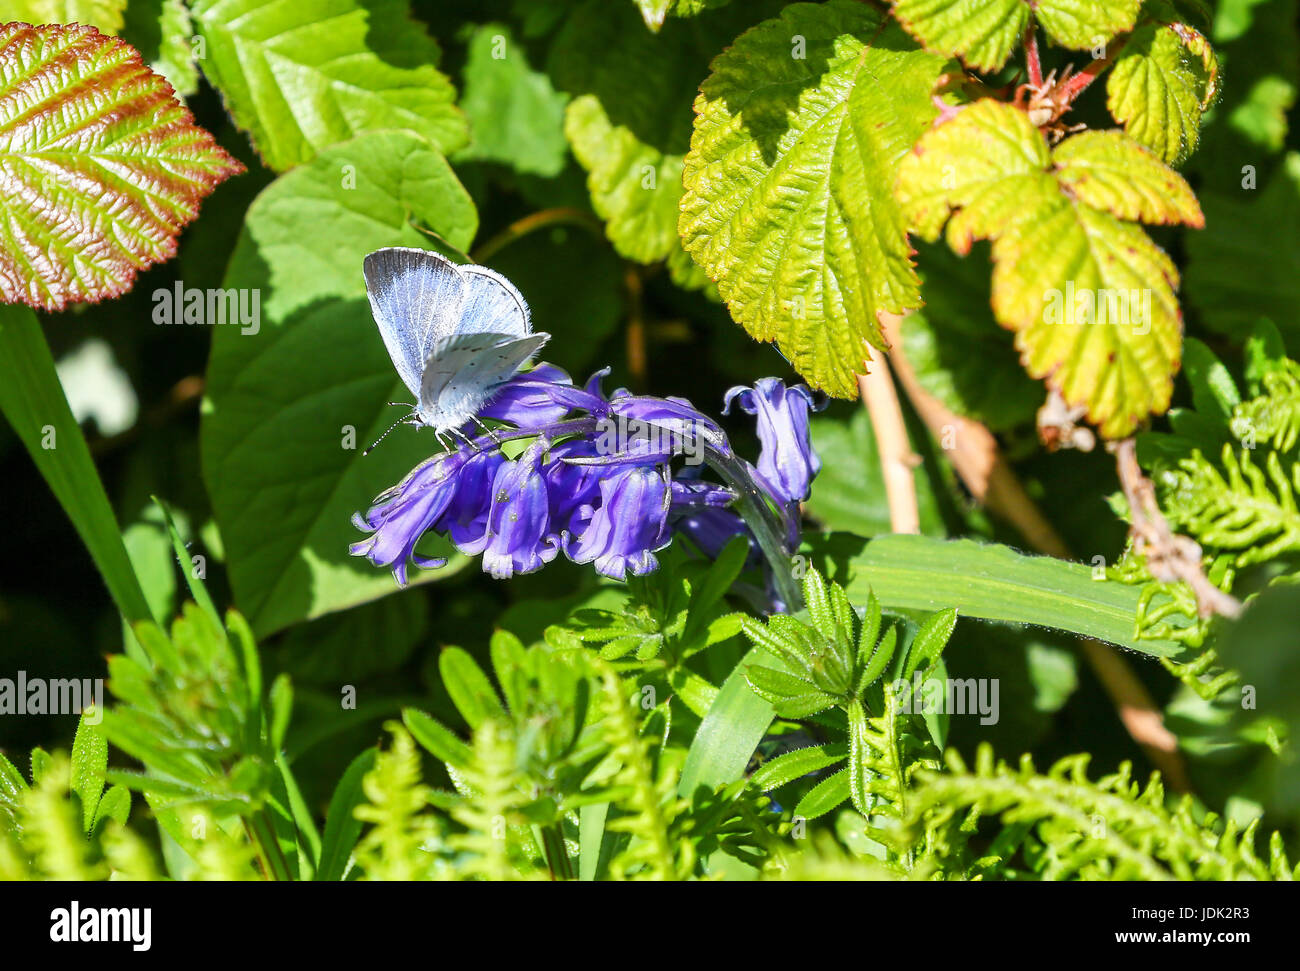 A Holly Blue butterfly (Celastrina argiolus) on an English Bluebell (Hyacinthoides non-scripta) flower - Stock Image